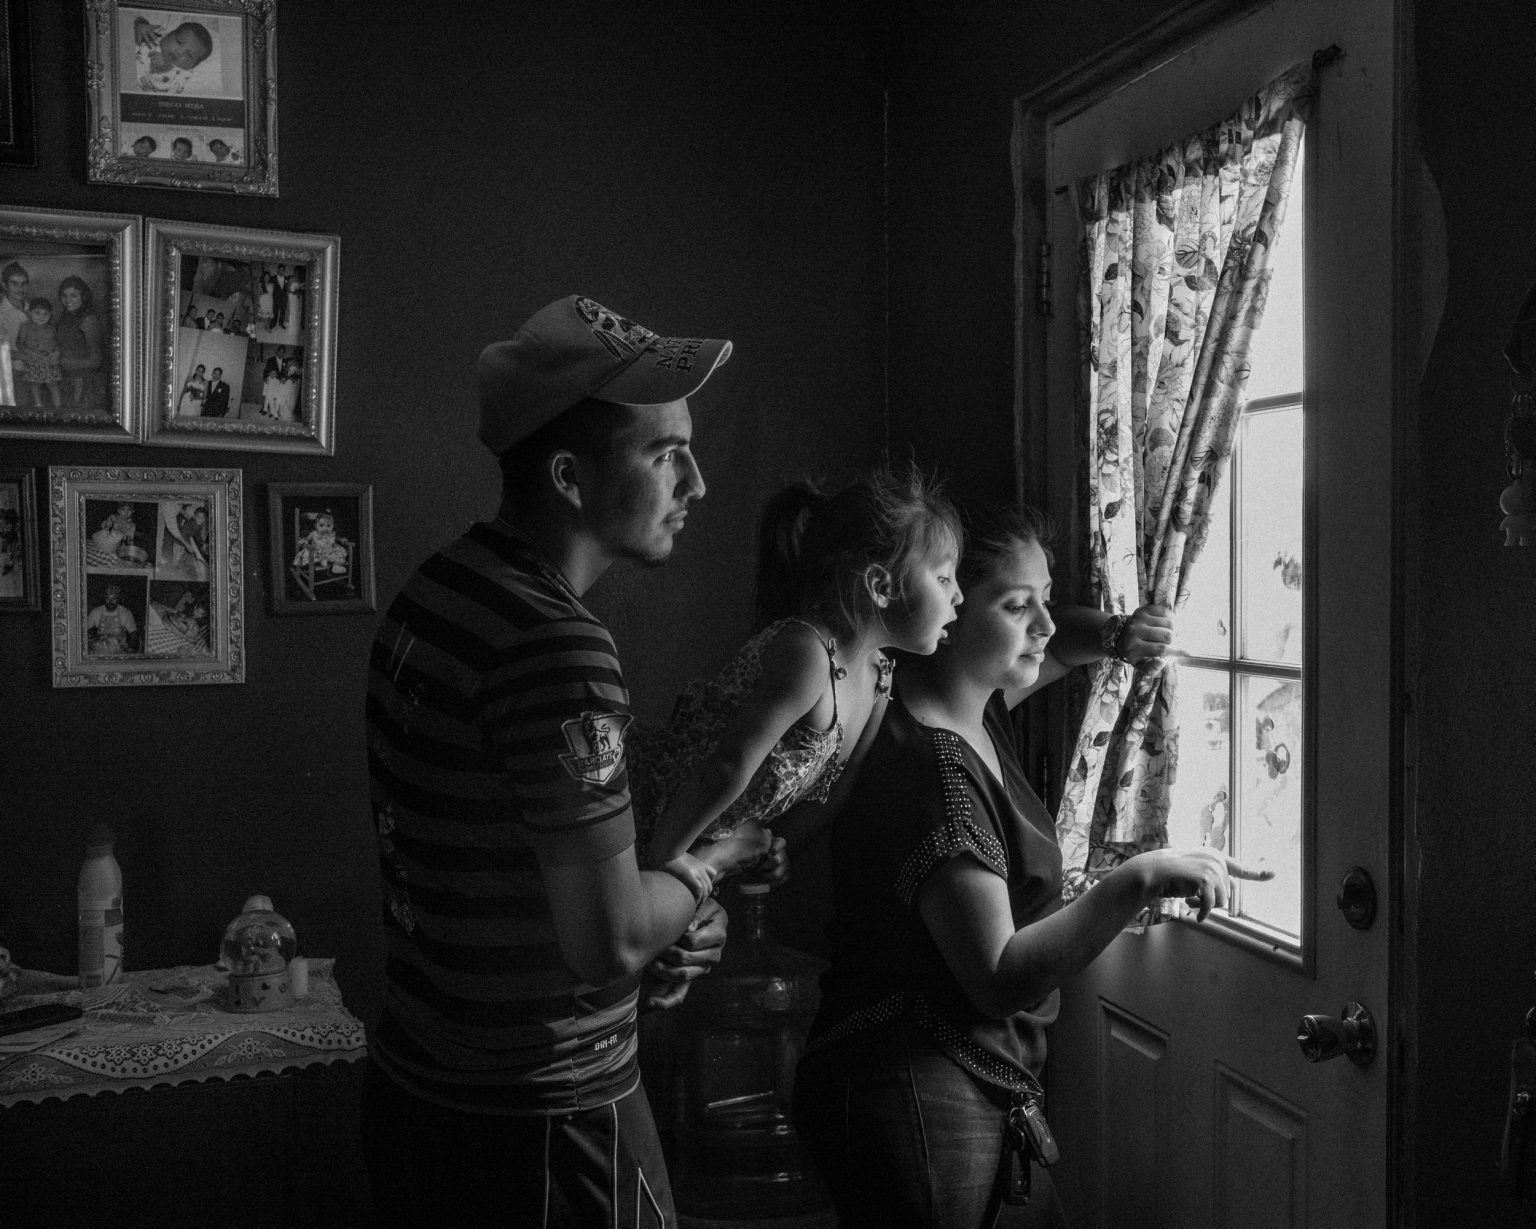 Luis Meija, 22 years old, with his wife Lizeth and their daughter Amberly, 3, in their house at colonia La PenÃÉita. Colonies are extremely poor communities of migrants, born along the border between Texas and Mexico where most people are illegally in the US.  La Joya, Texas. April, 2017.